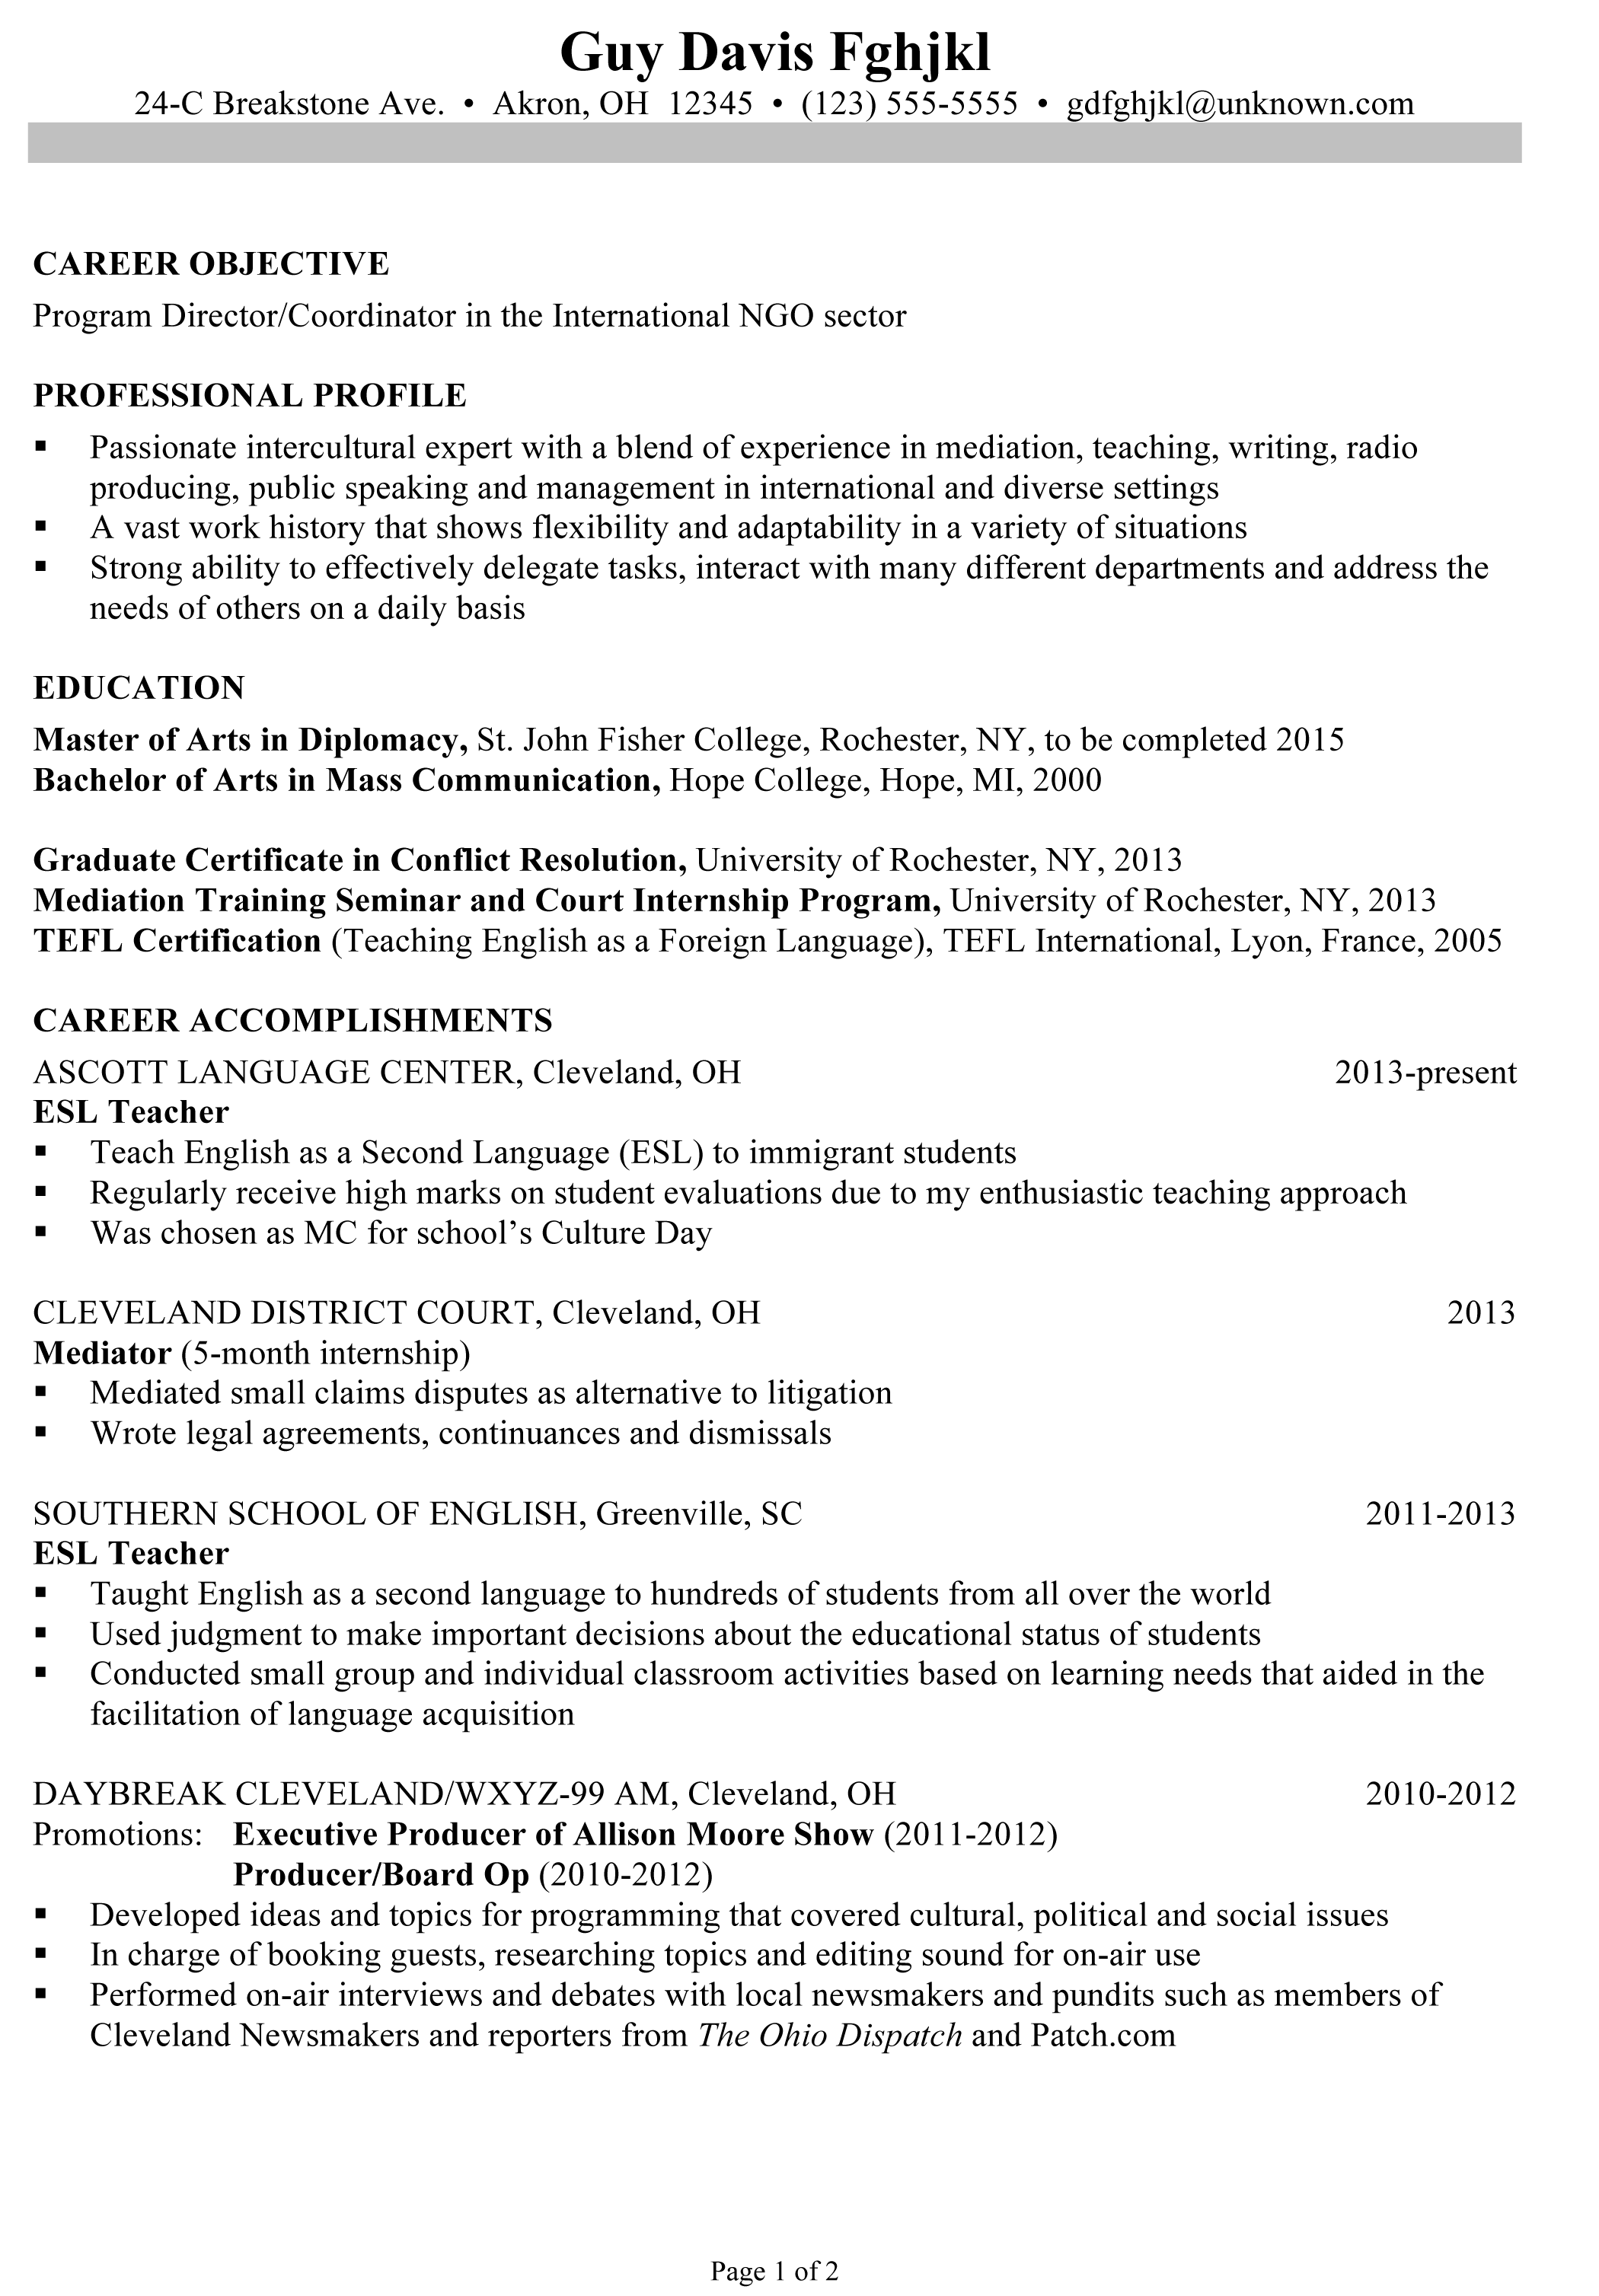 Tefl Resume Sample Cover Letter Esl Application Writers Site